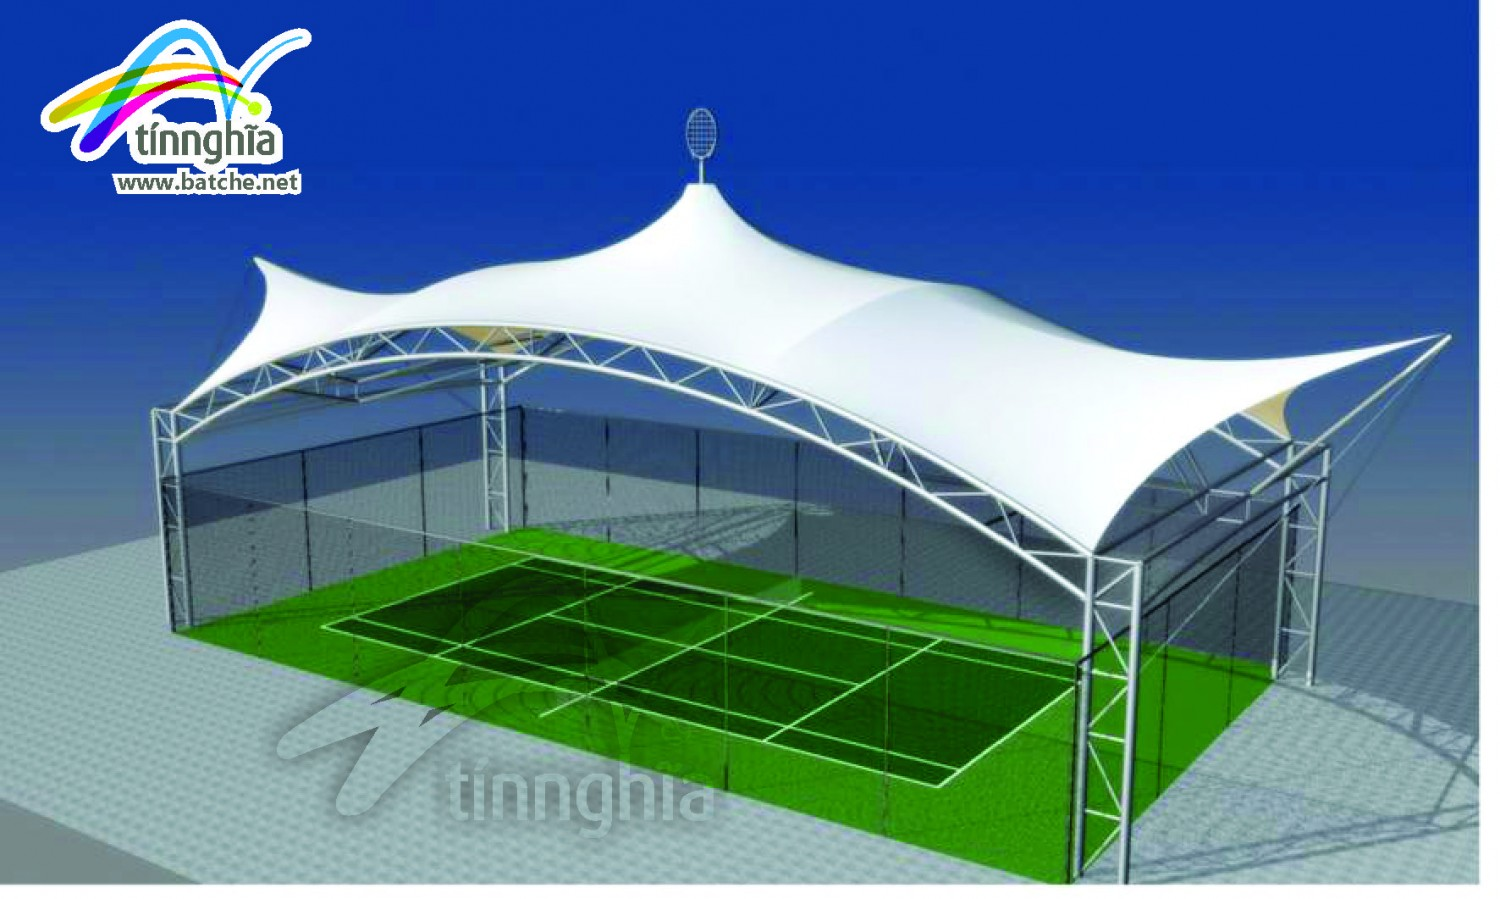 Shade Sails for Tennis Court